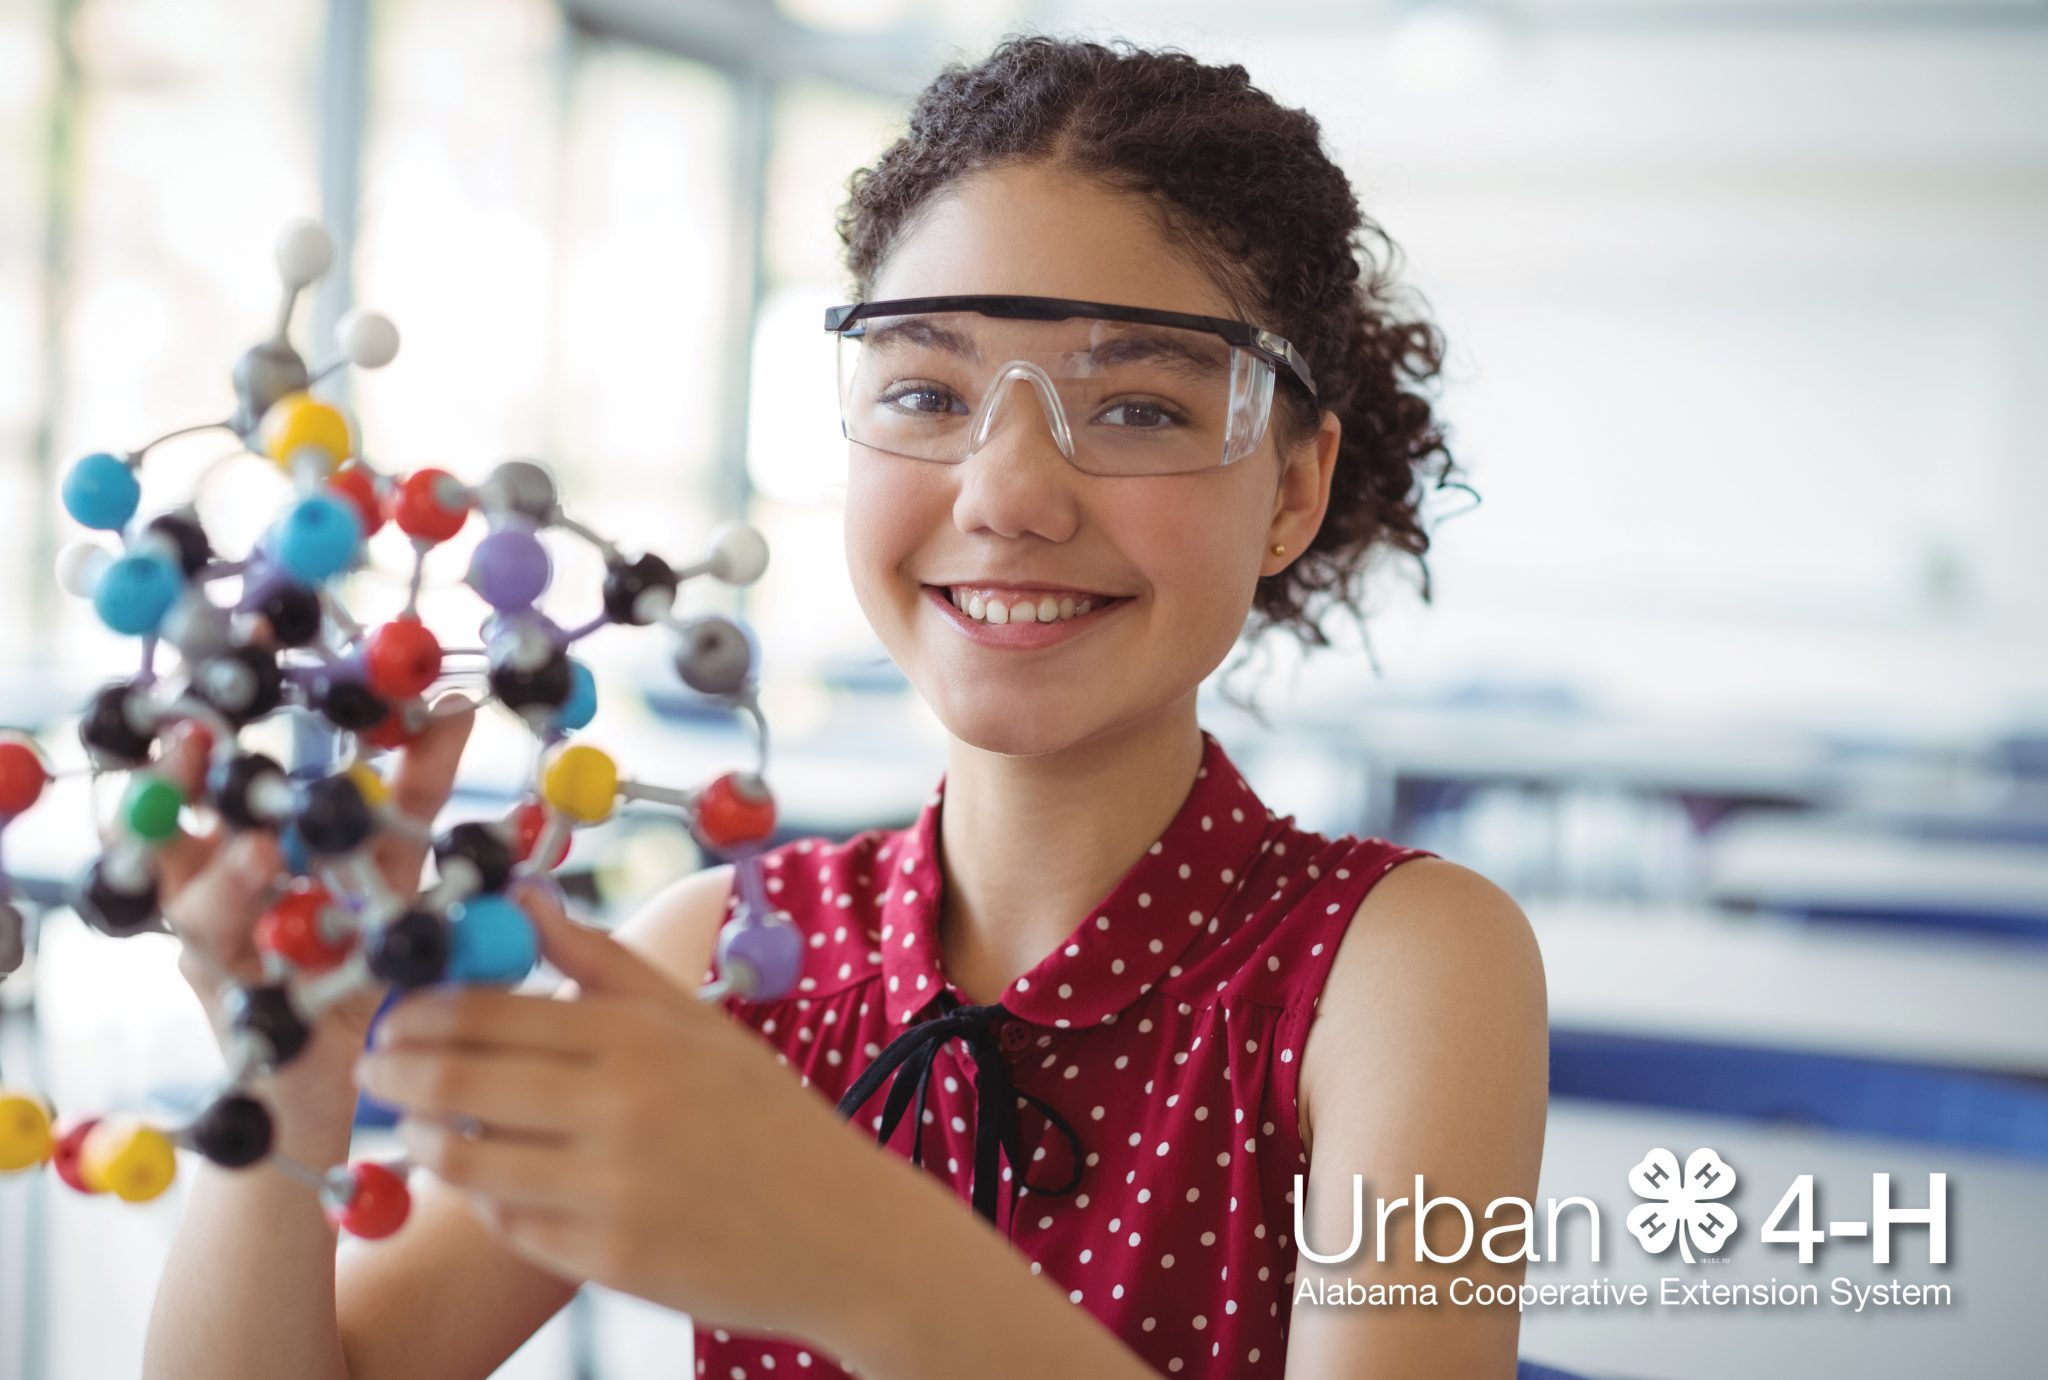 Middle School aged girl wearing safety goggles and holding a molecular model.